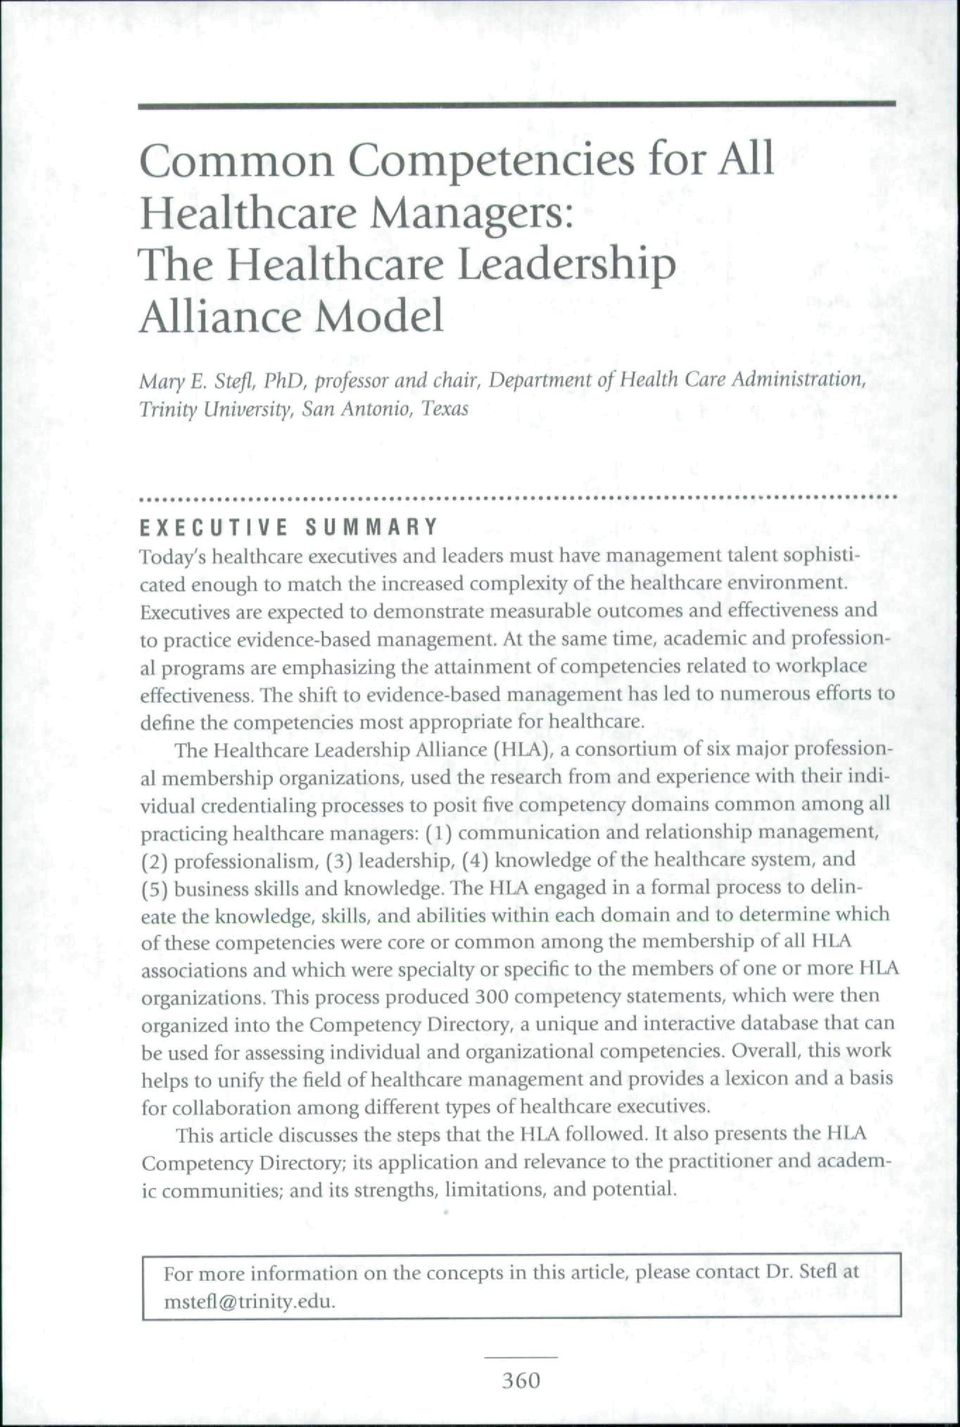 EXECUTIVE SUMMARY Today's healthcare executives and leaders must have management talent sophisticated enough to match the increased complexity of the healthcare environment.